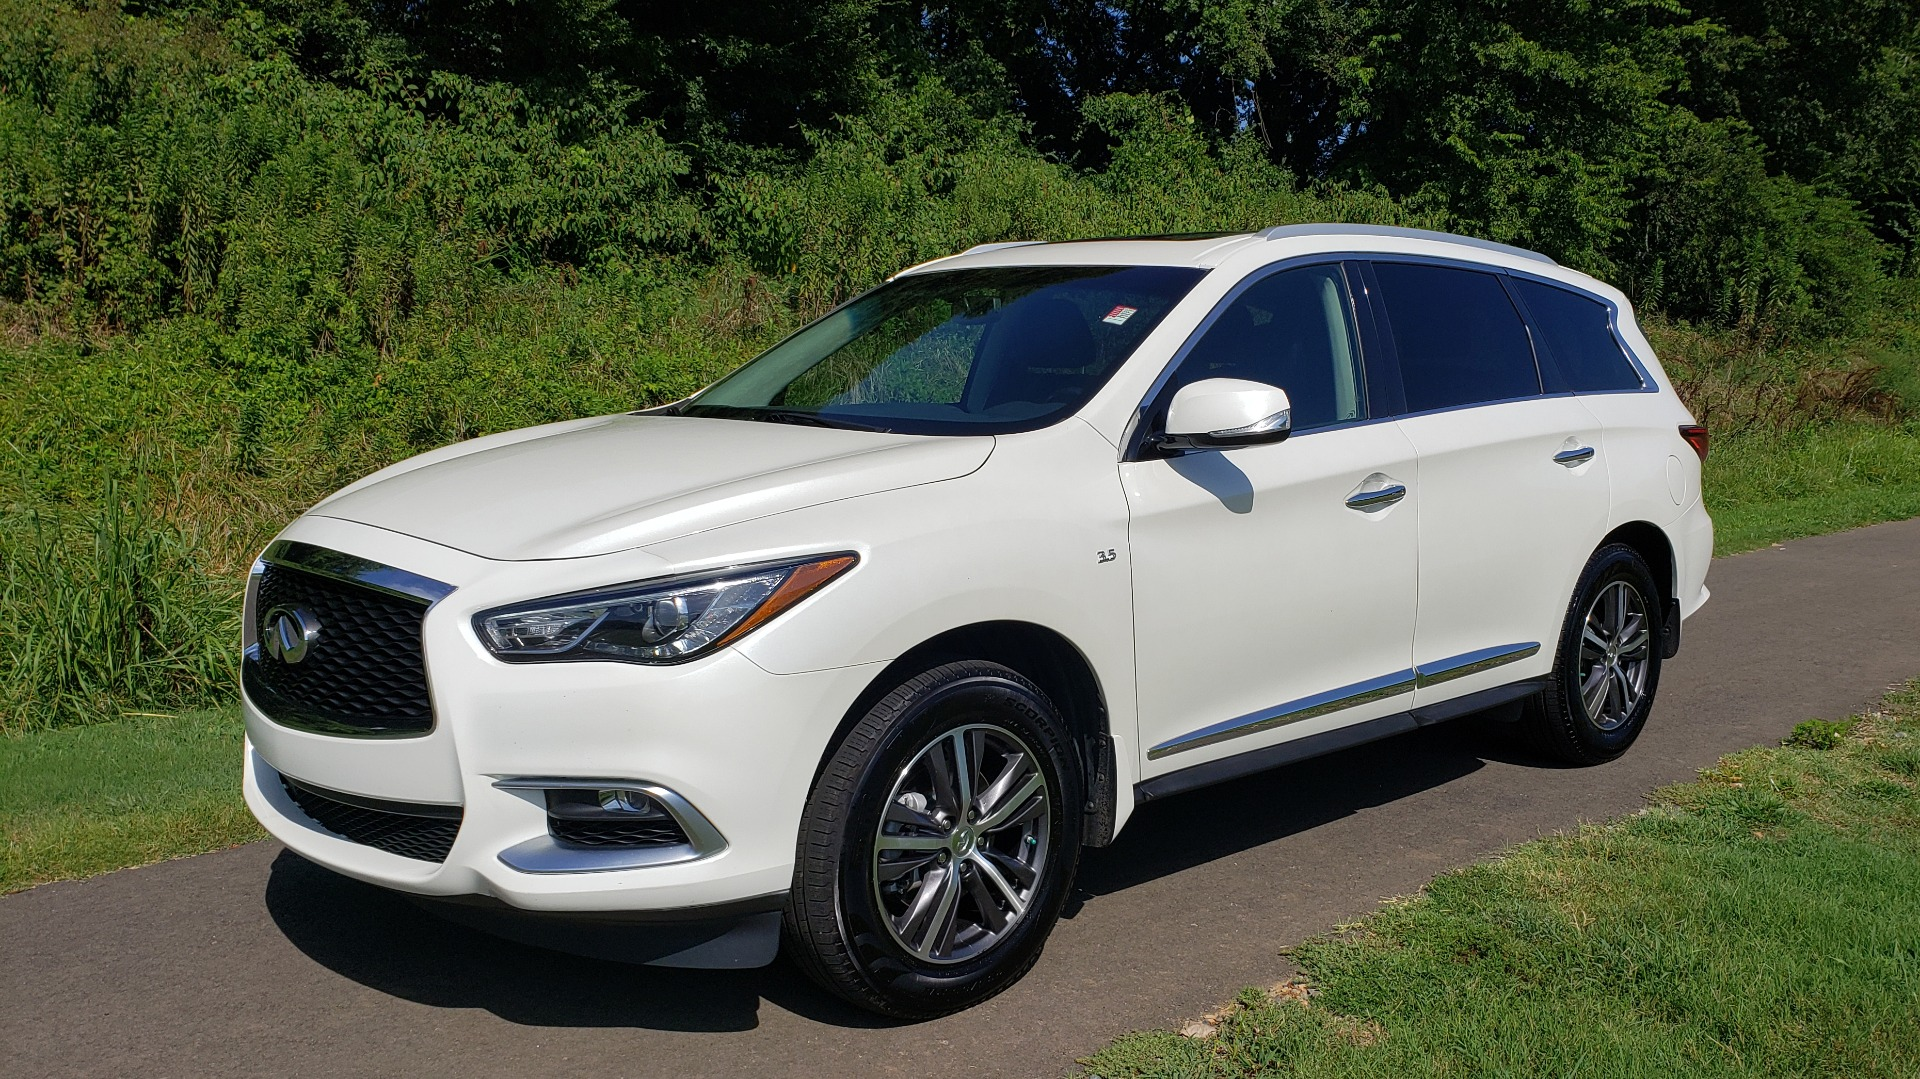 Used 2016 Infiniti QX60 AWD / 3.5L V6 / SUNROOF / HTD STS / 3-ROW / TOWING / REARVIEW for sale Sold at Formula Imports in Charlotte NC 28227 3